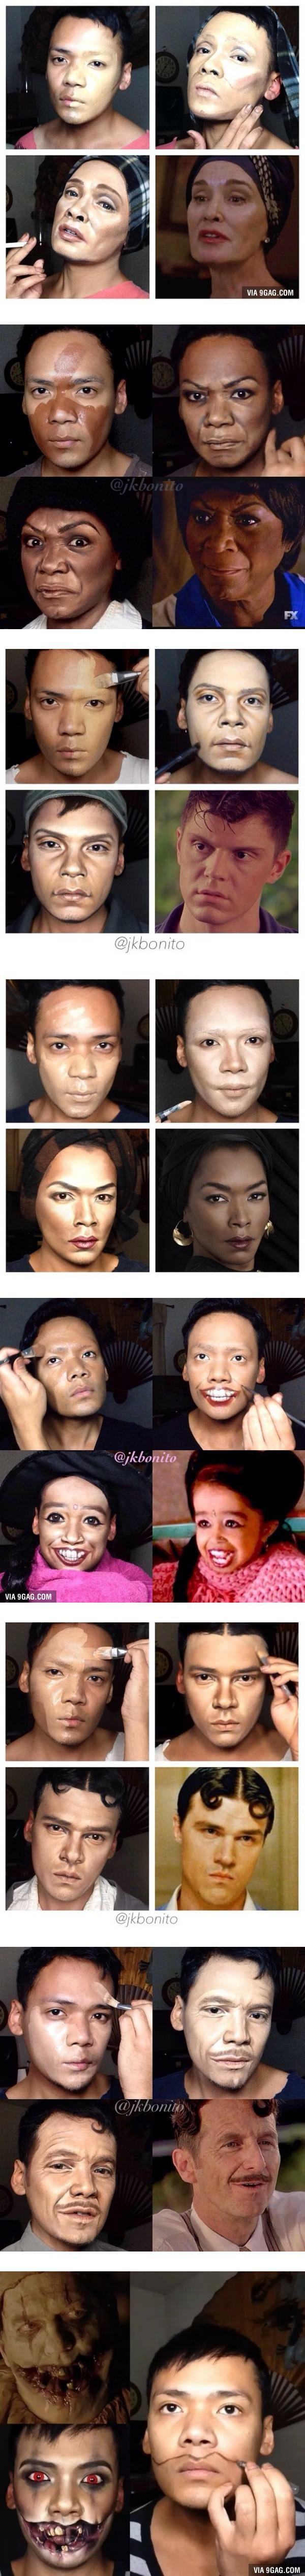 """Guy Transforms Himself Into Every """"American Horror Story"""" Character With Nothing But Makeup vía #9gag"""